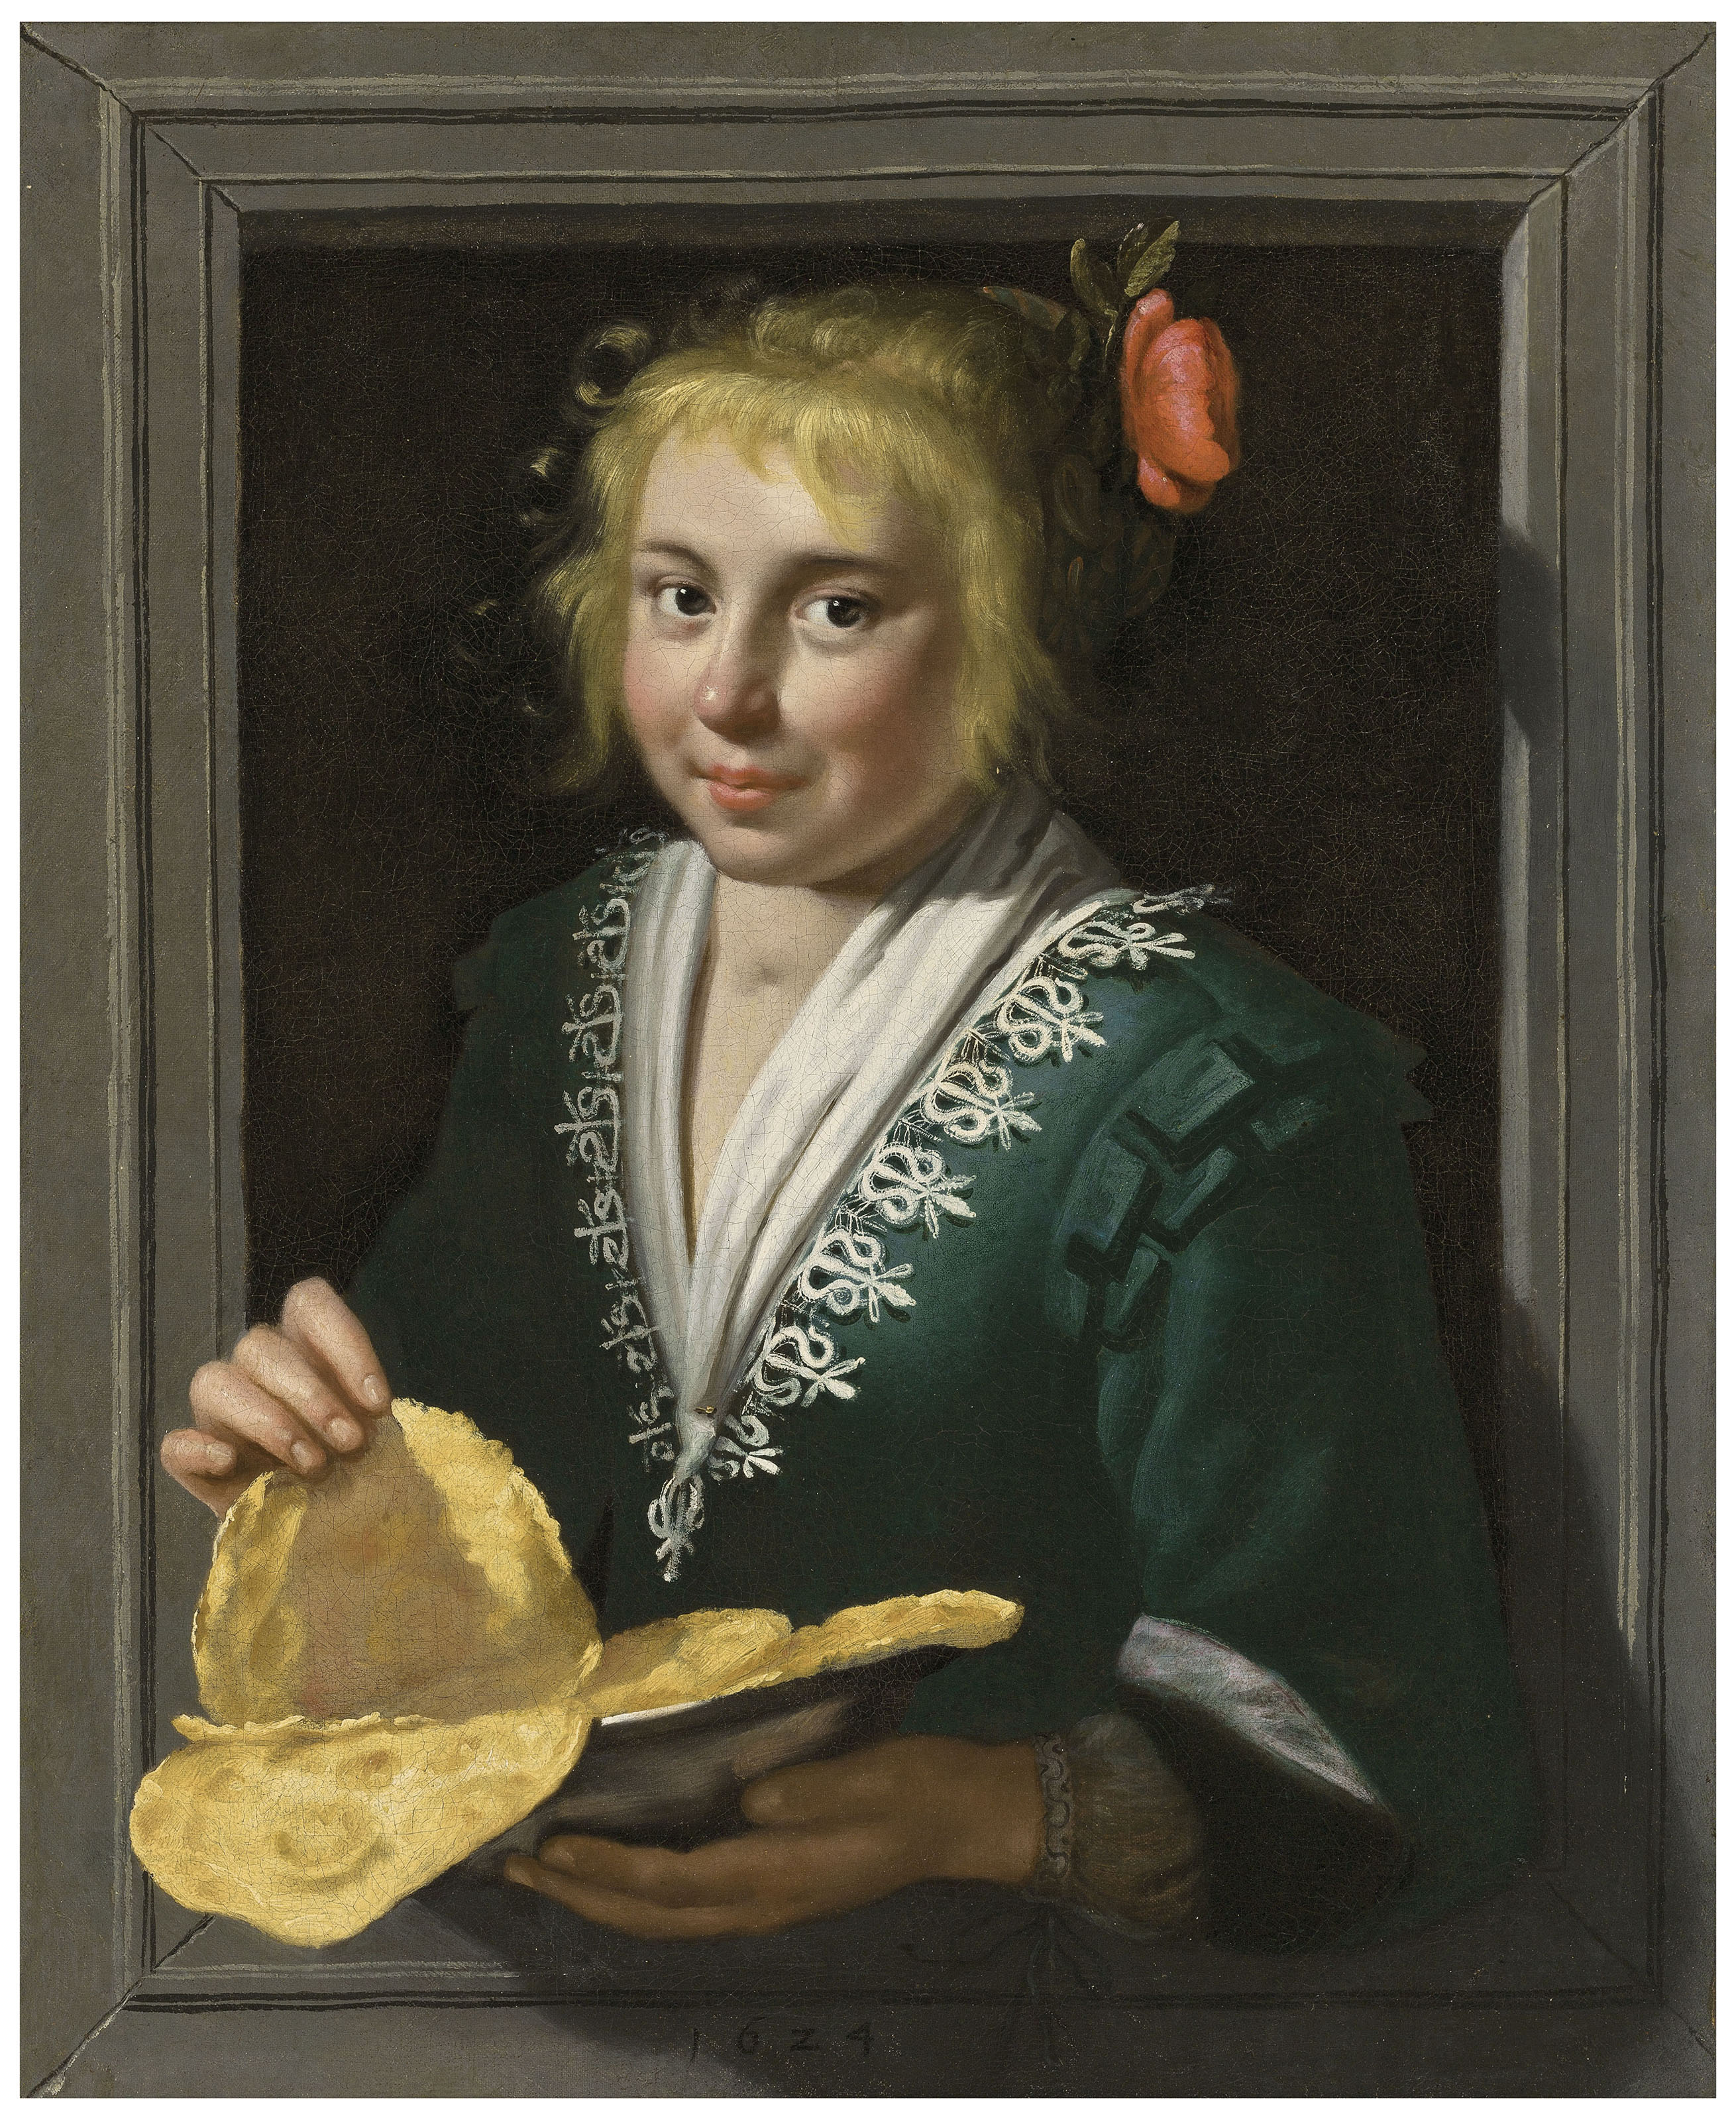 A girl holding pancakes in a feigned stone window